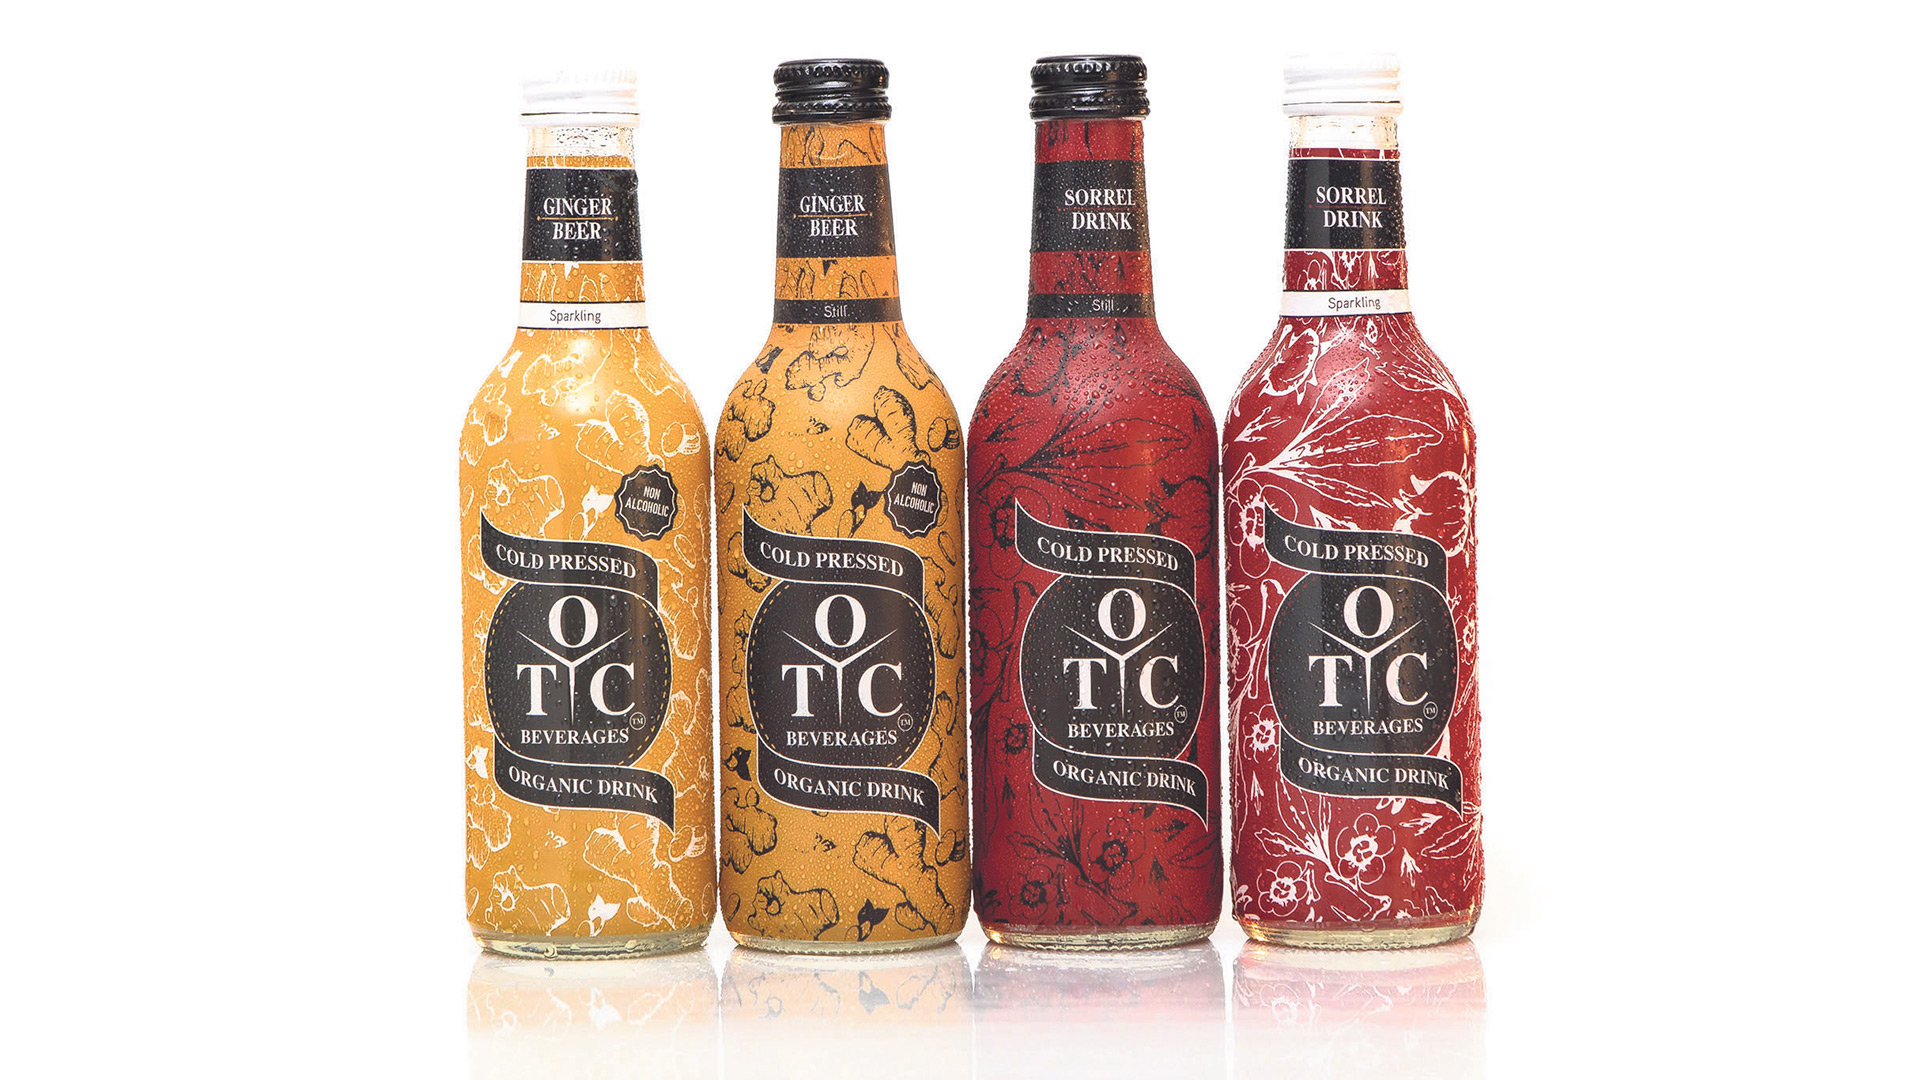 Win one of five boxes of refreshing OTC drinks. Worth £12 each!